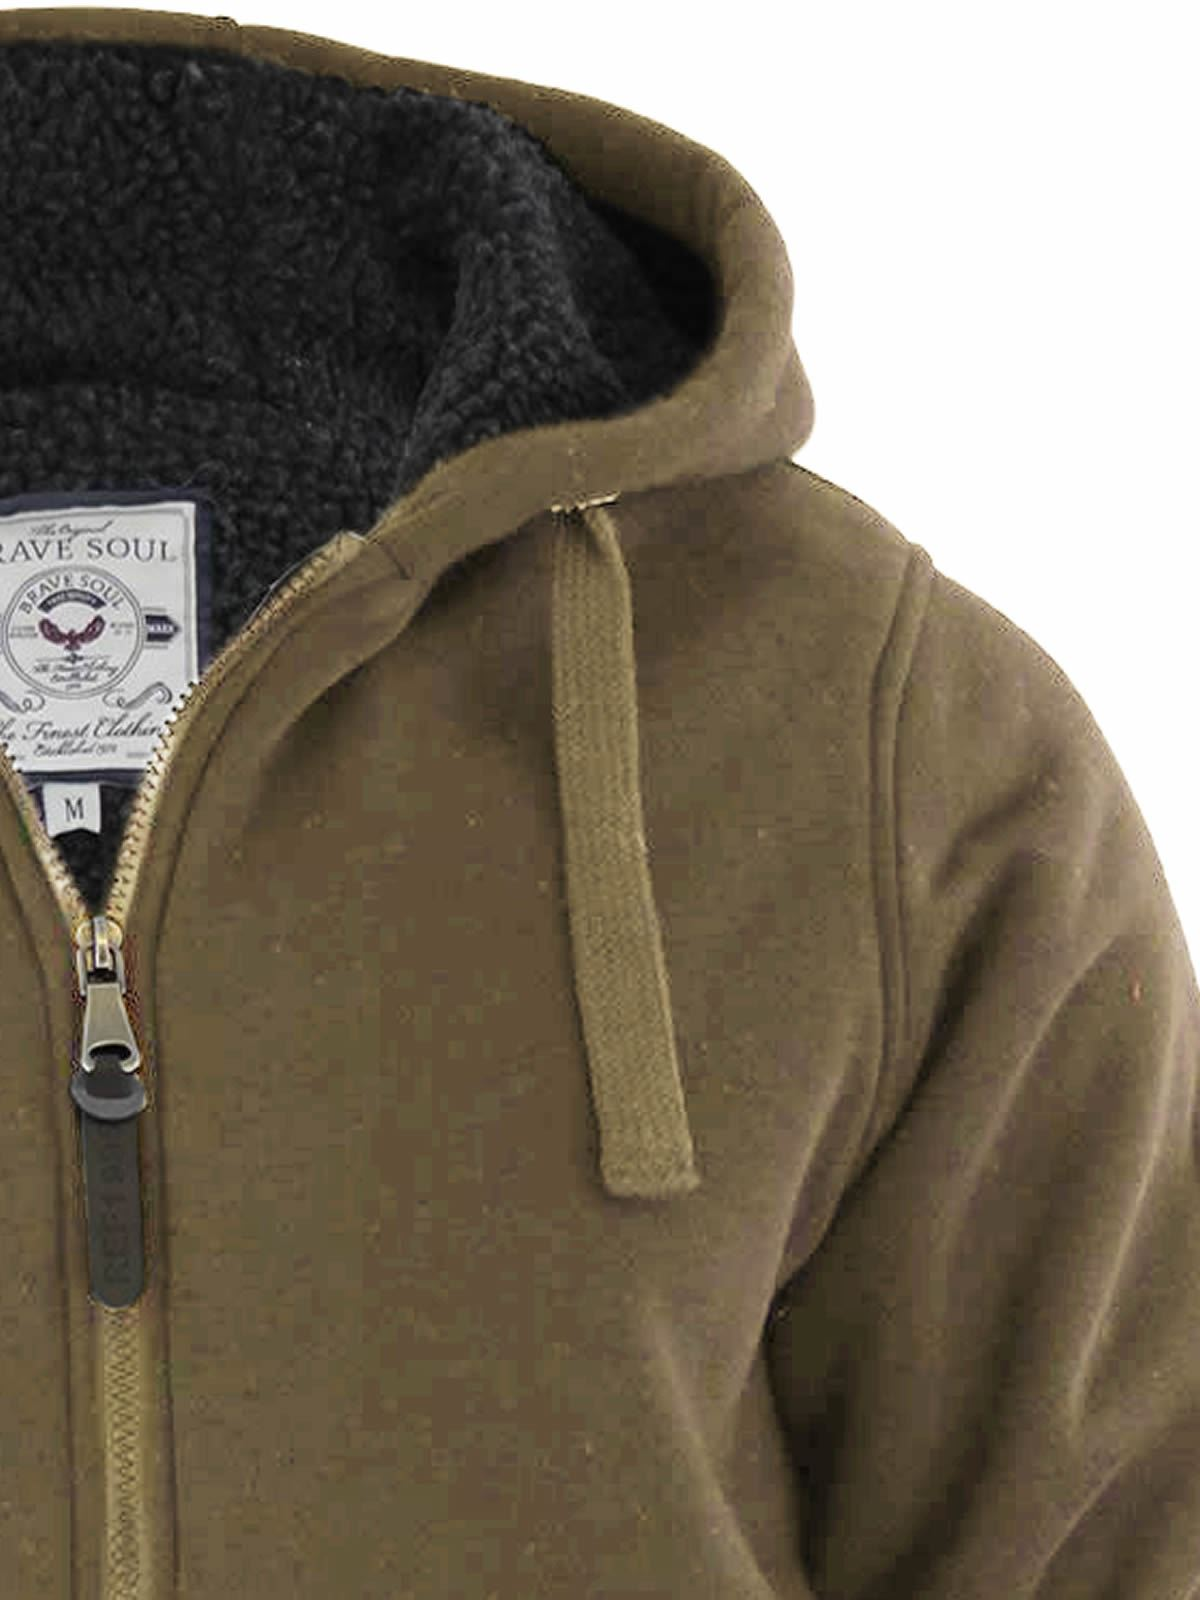 Mens-Hoodie-Brave-Soul-Zone-Sherpa-Fleece-Lined-Zip-Up-Hooded-Sweater thumbnail 16